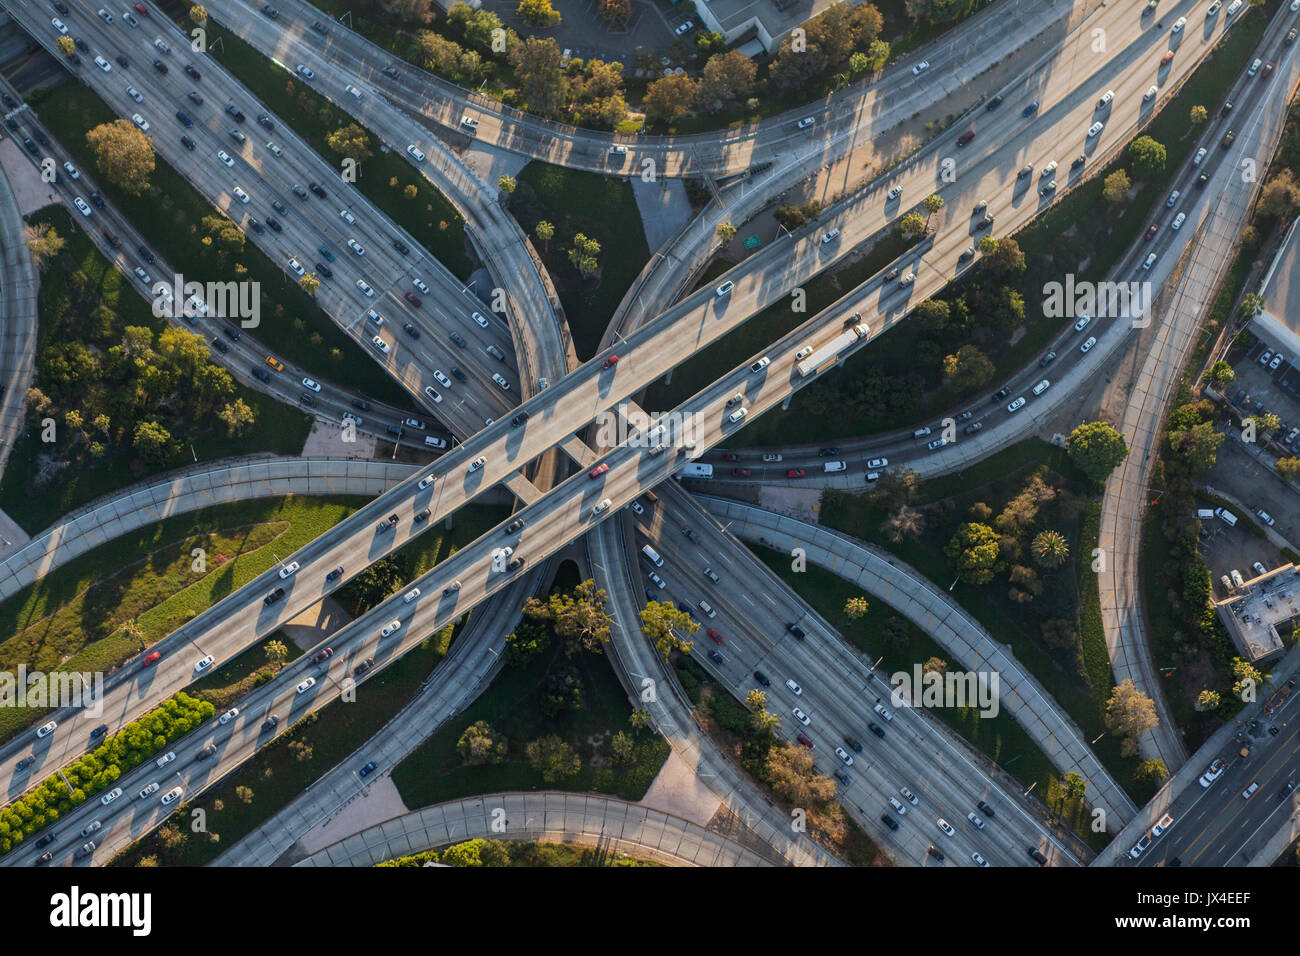 Los Angeles Harbor 110 and Hollywood 101 four level freeway interchange in Southern California. Stock Photo